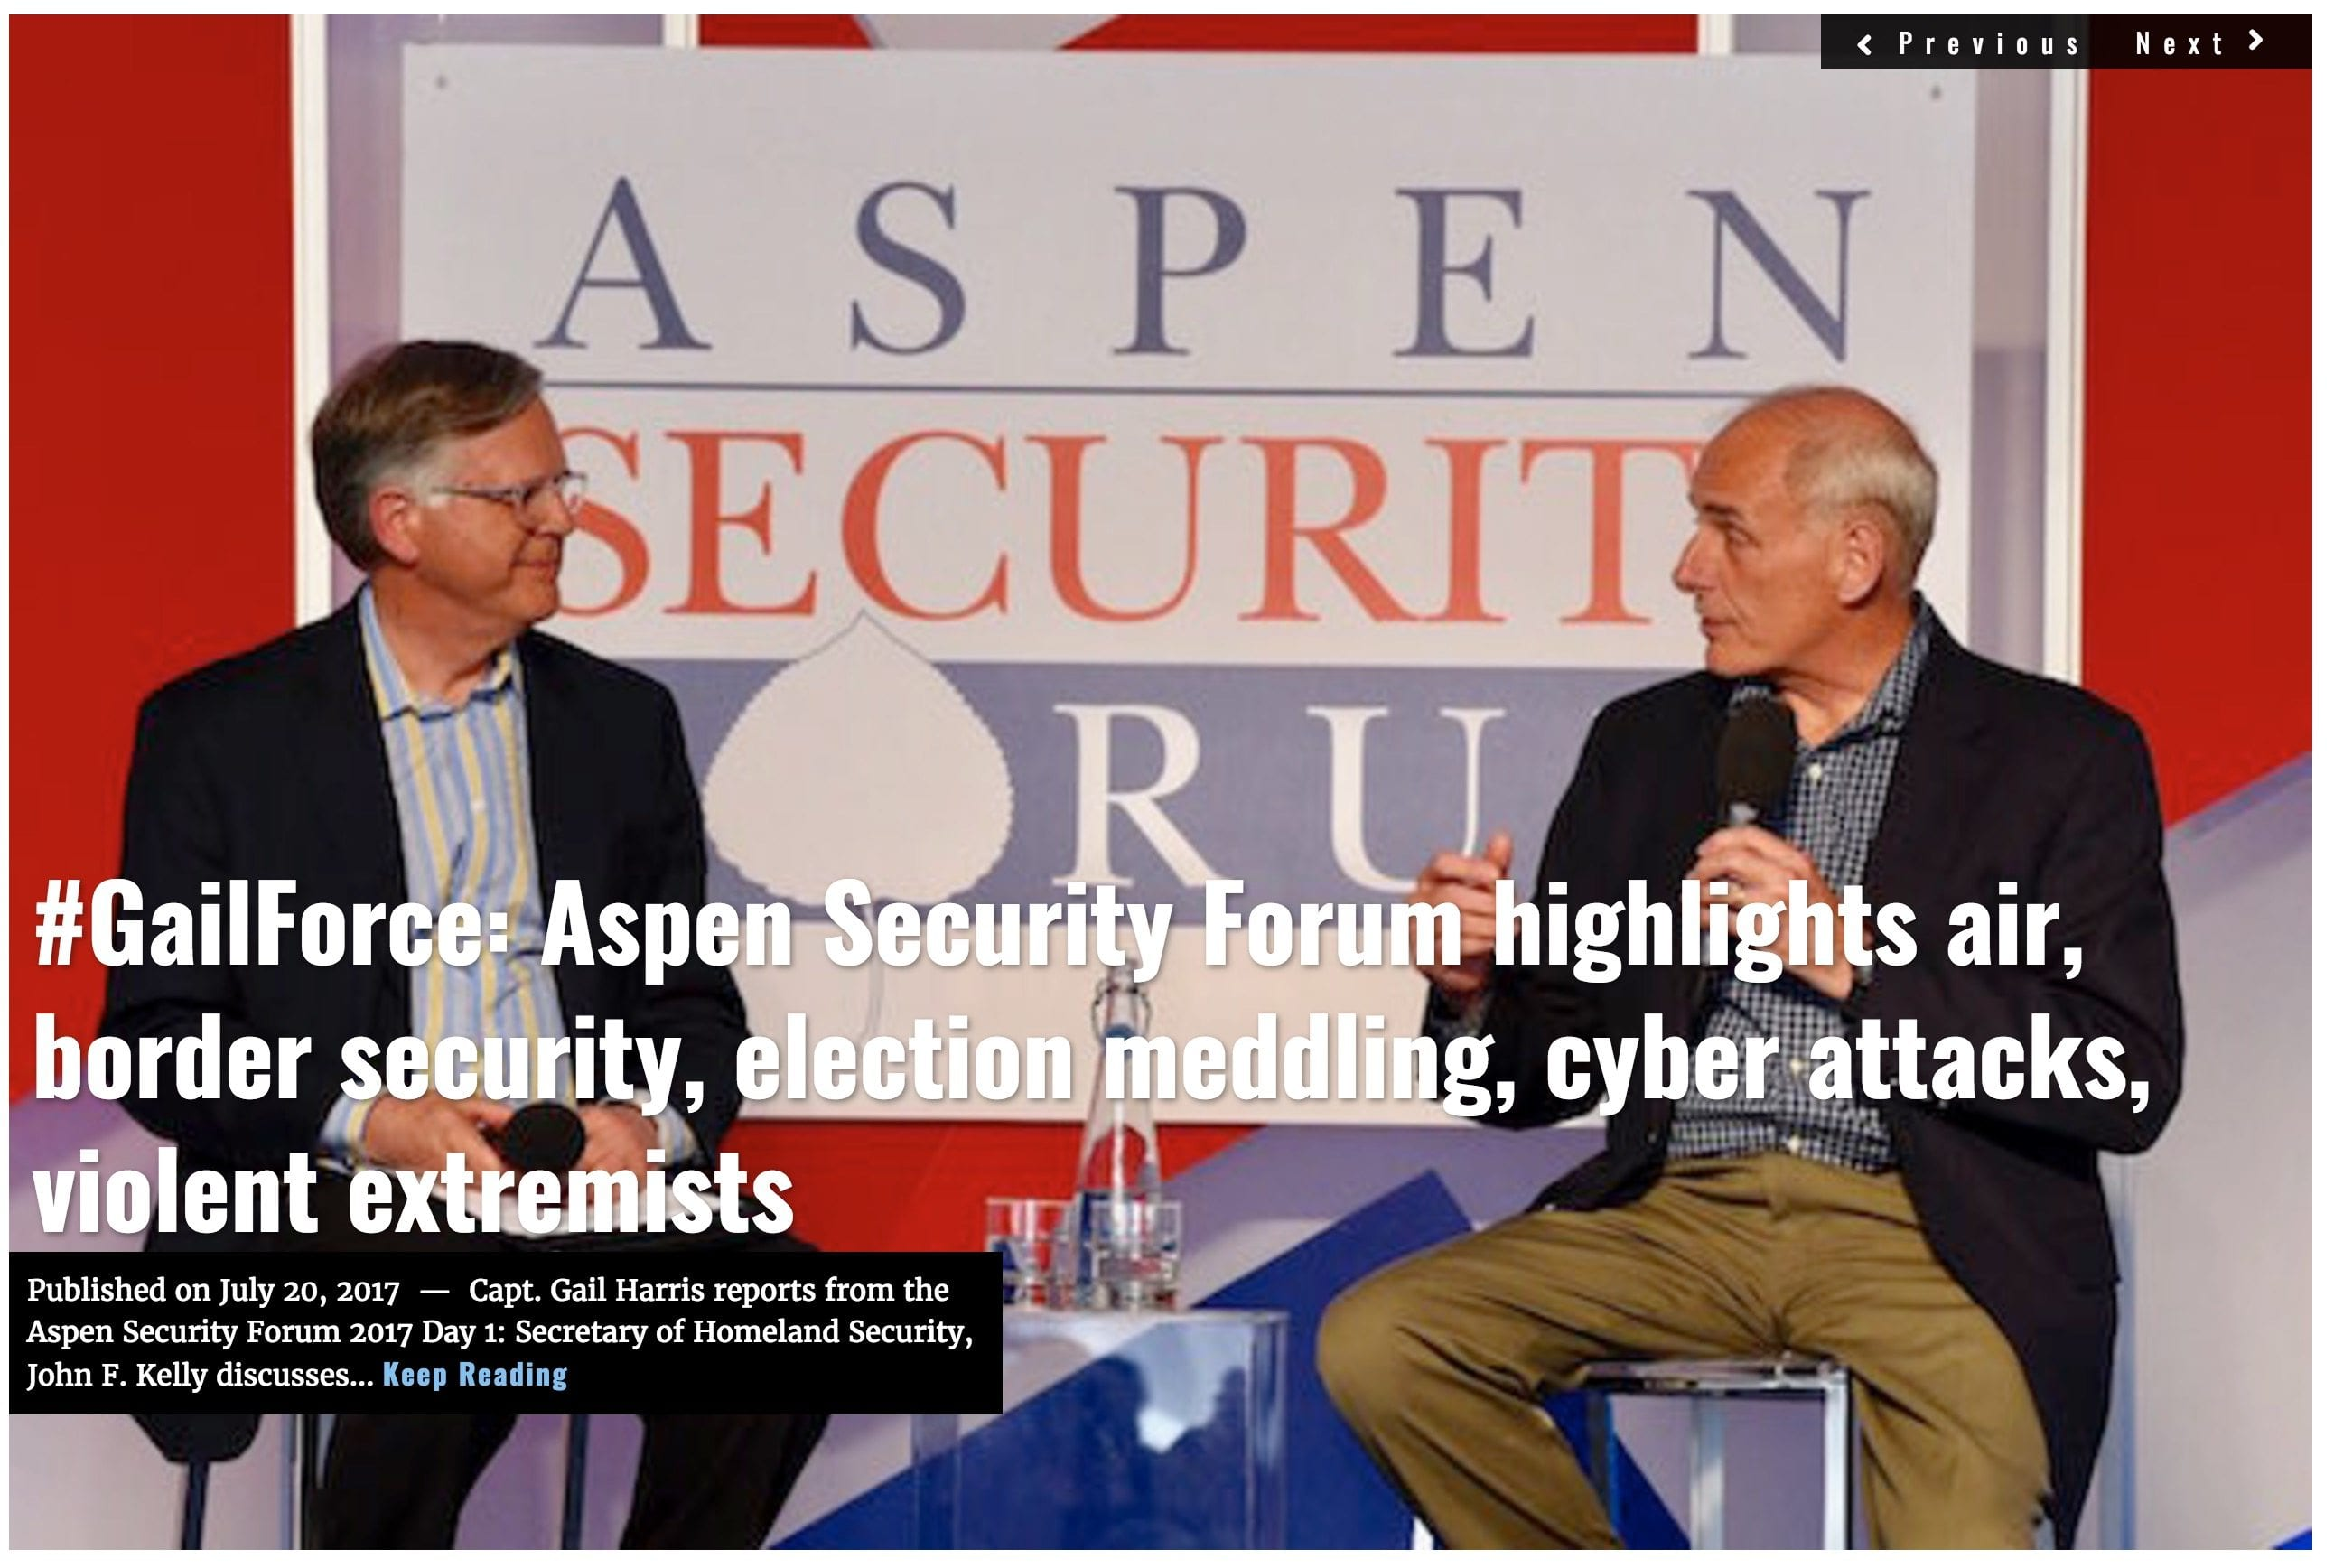 Image Lima Charlie News headline July 20 2017 Gailforce Aspen Security Forum